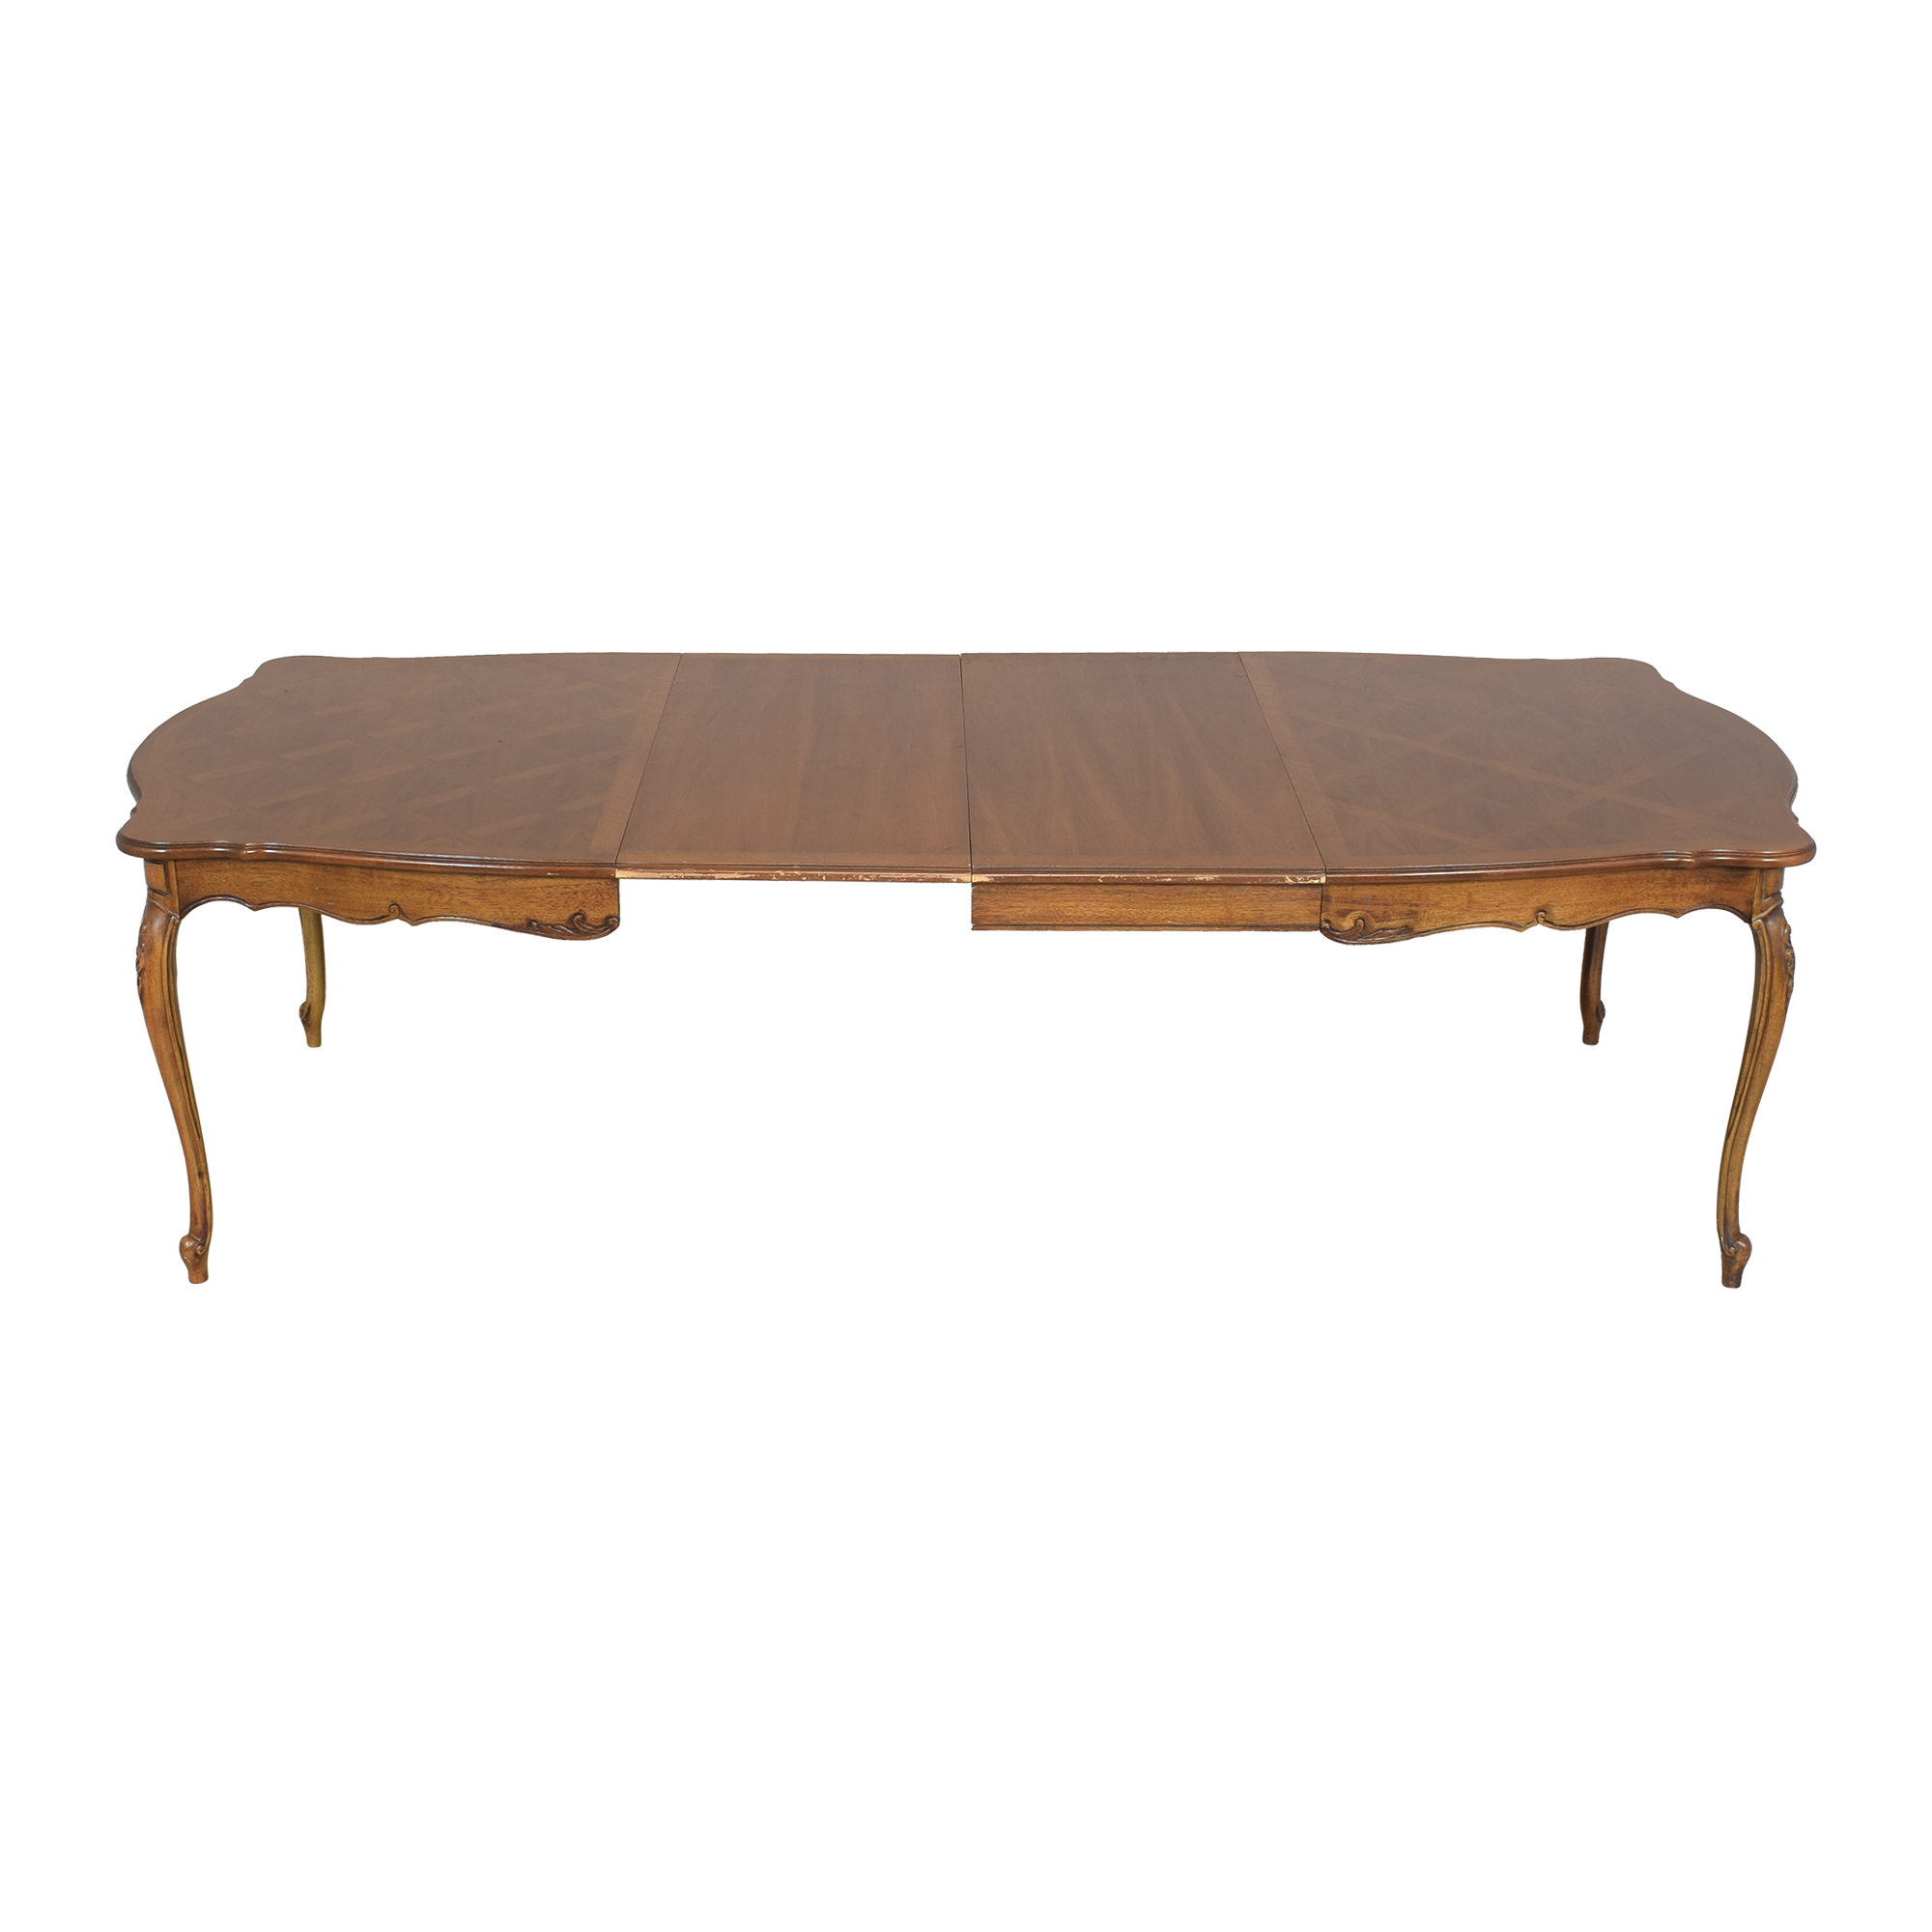 Thomasville Thomasville Expandable Dining Table pa